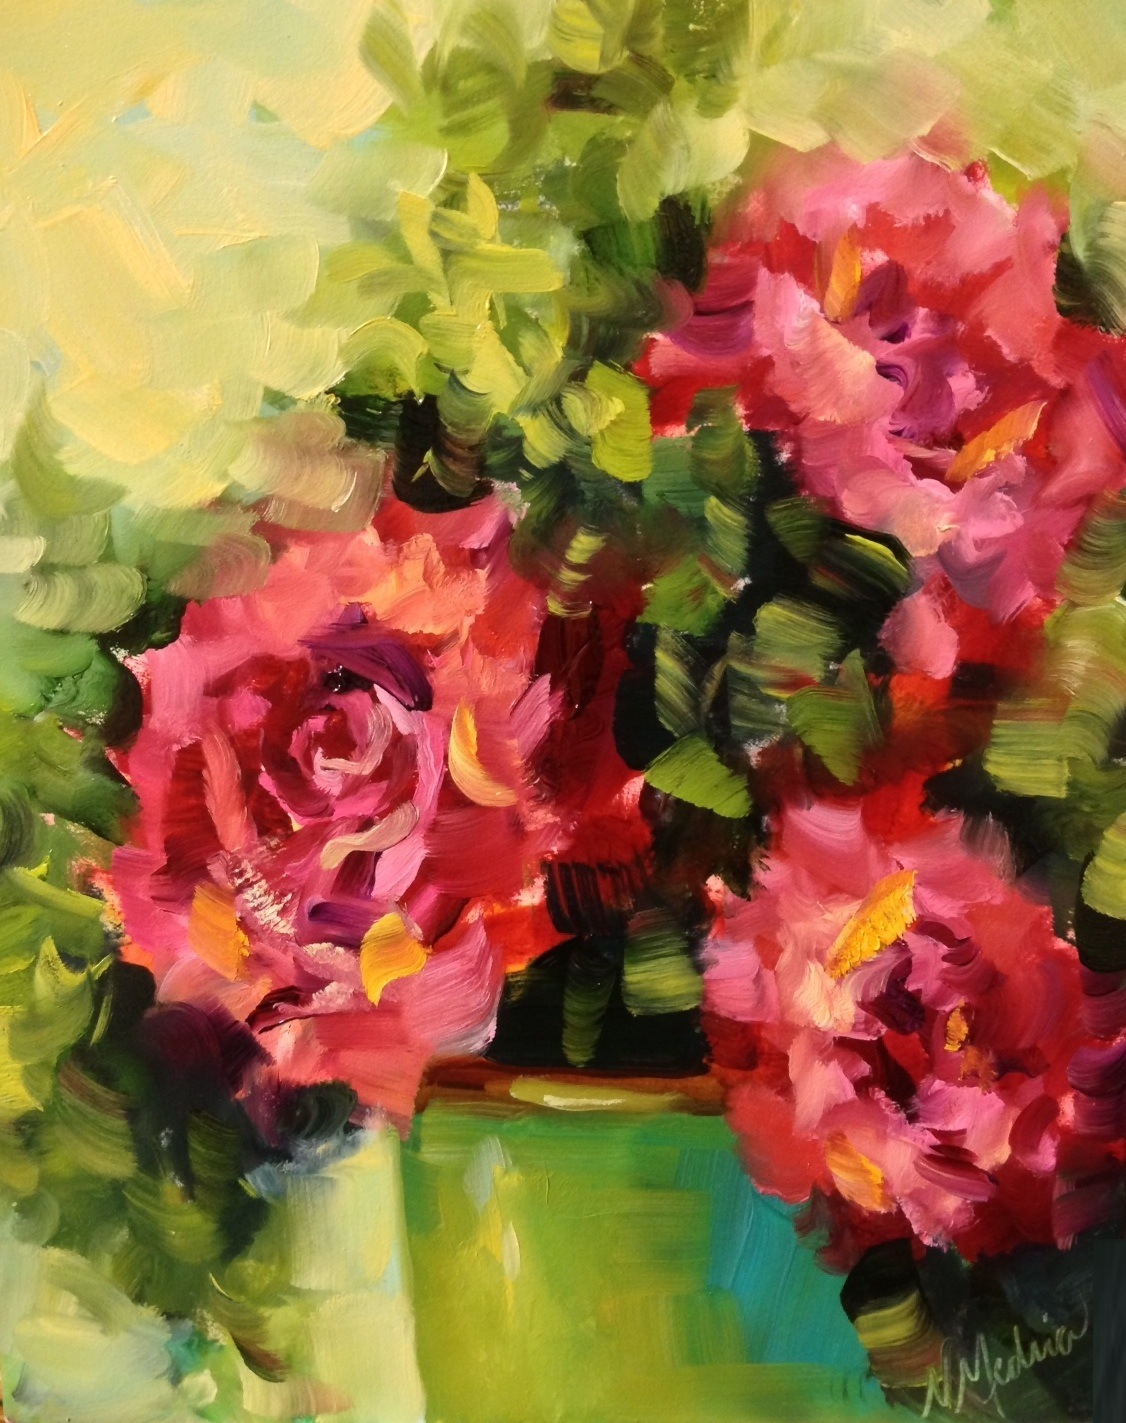 Nancy medina art 05012013 06012013 pink roses and perks of painting at the dallas arboretum by texas flower artist nancy medina mightylinksfo